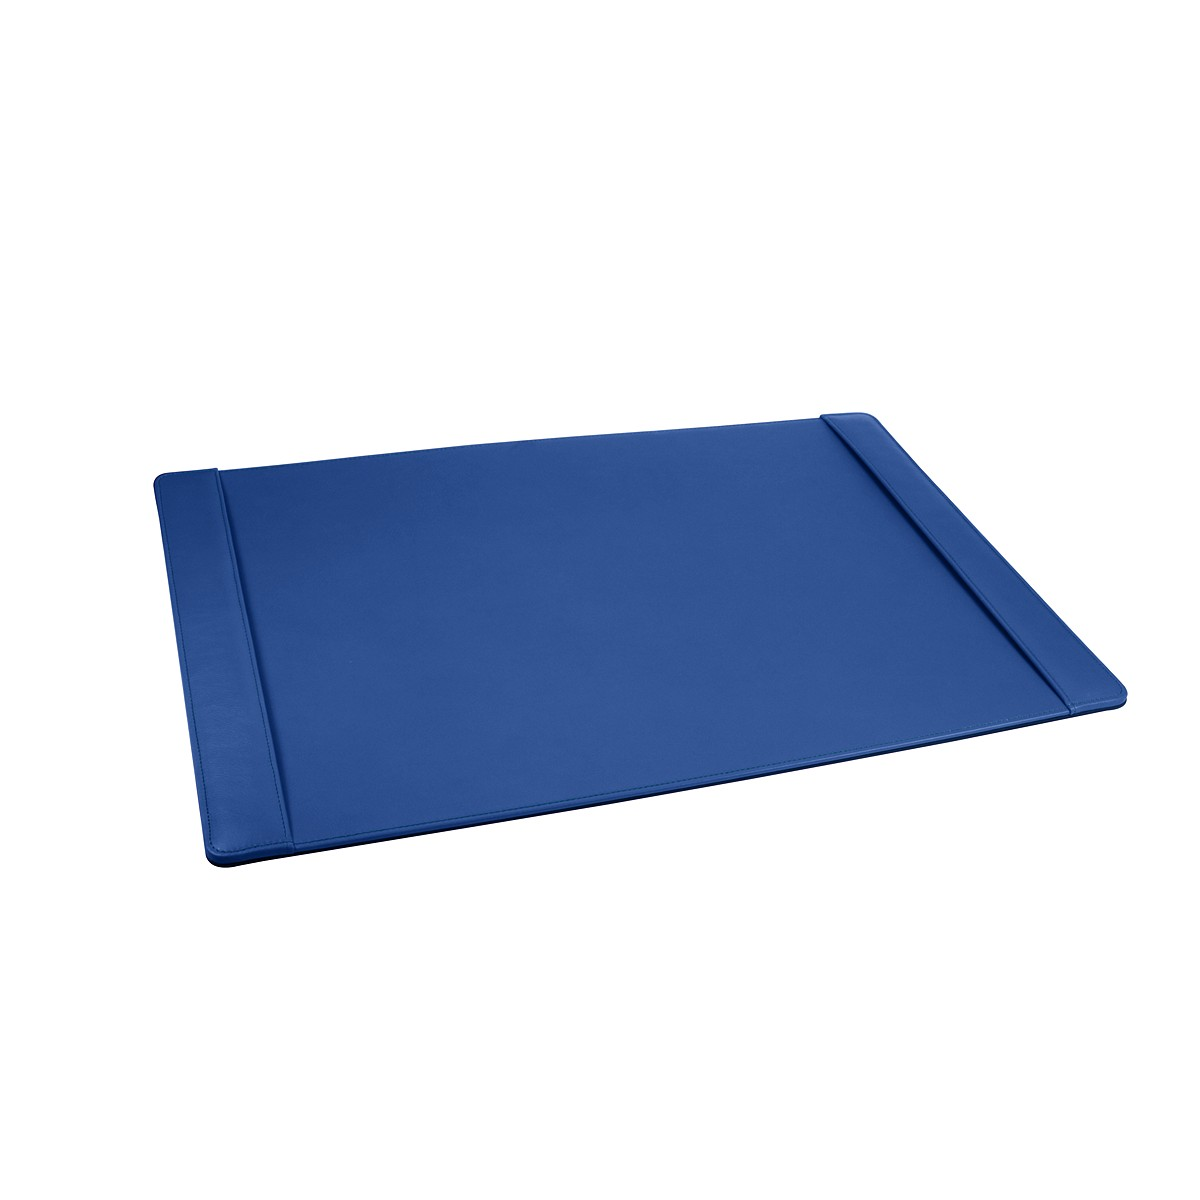 Leather Desk pad 2 sections